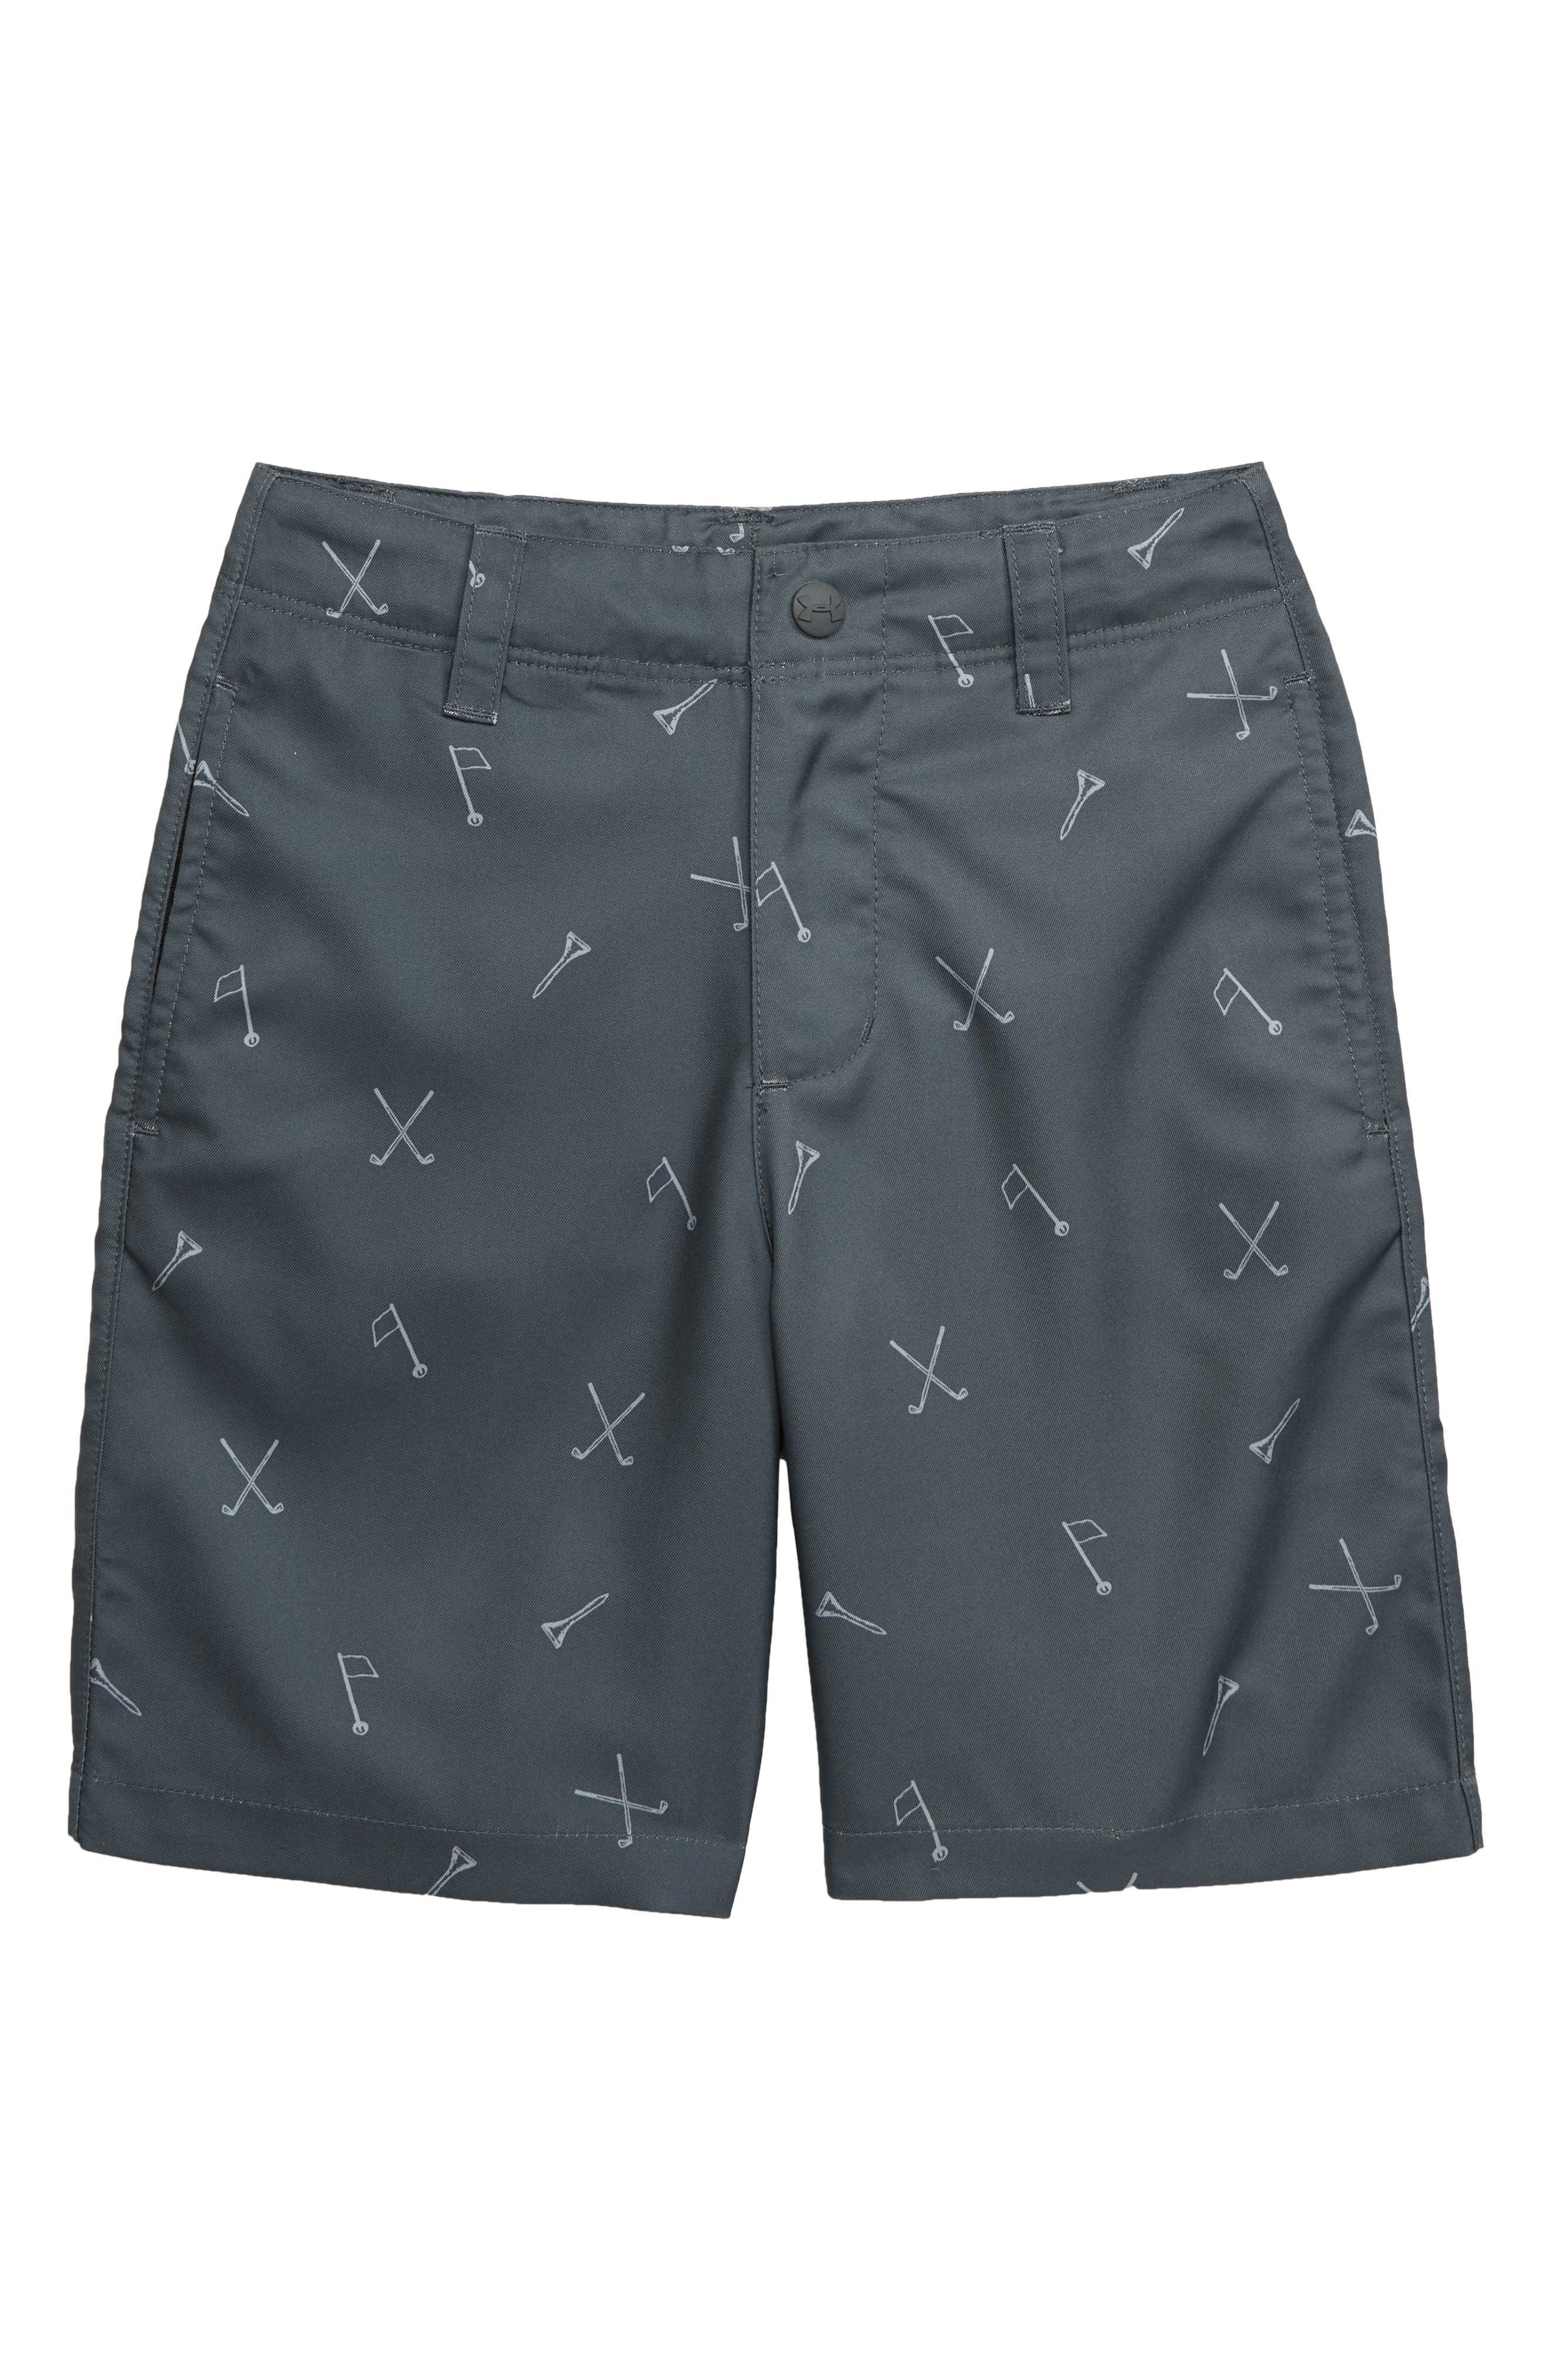 UNDER ARMOUR Golf Icons HeatGear<sup>®</sup> Golf Shorts, Main, color, PITCH GRAY